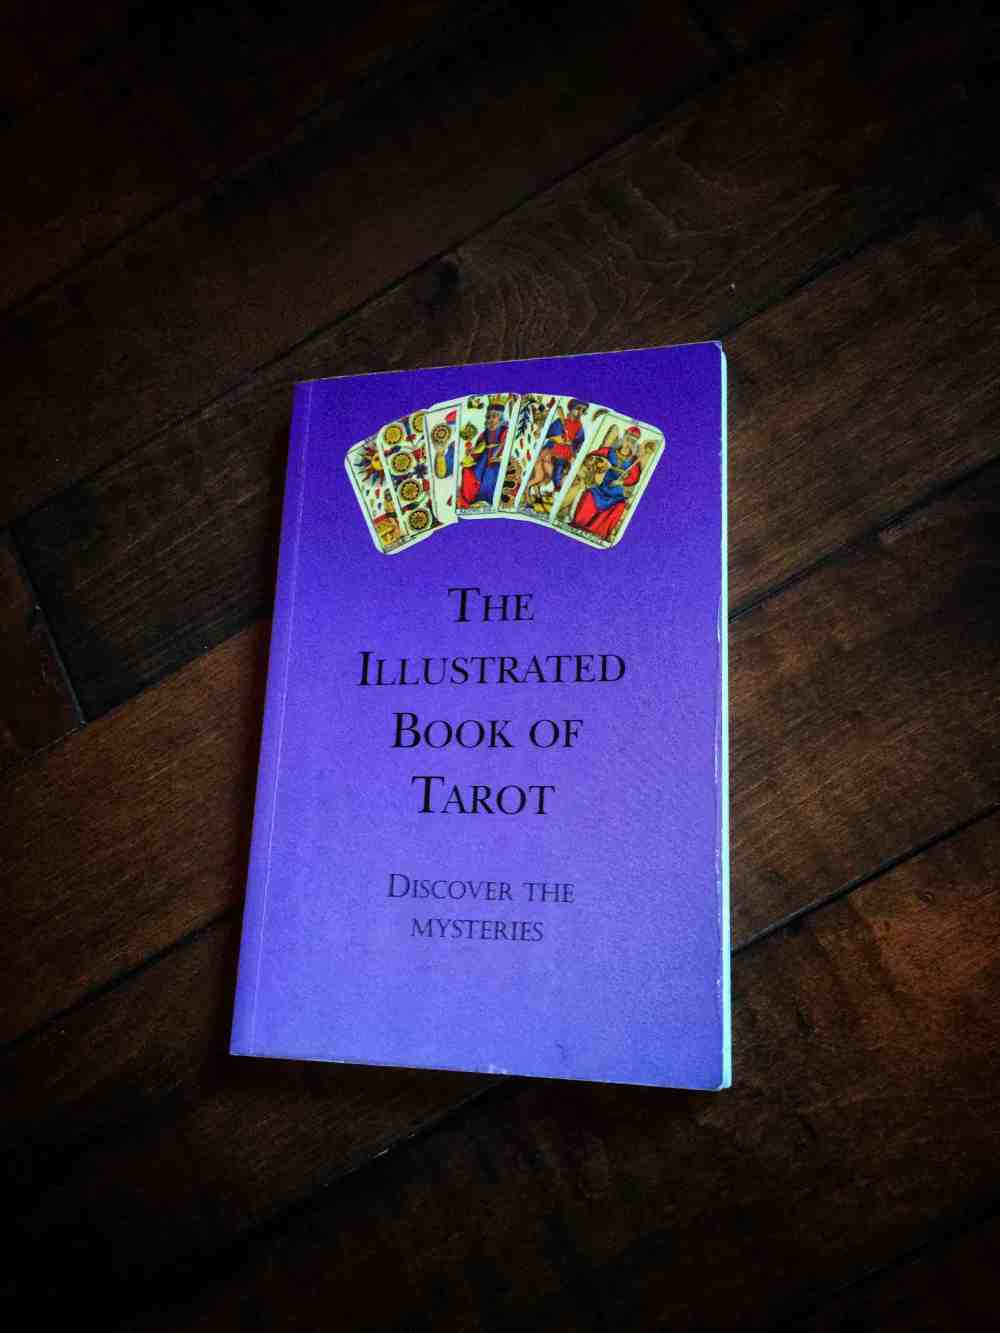 The Illustrated Book of Tarot